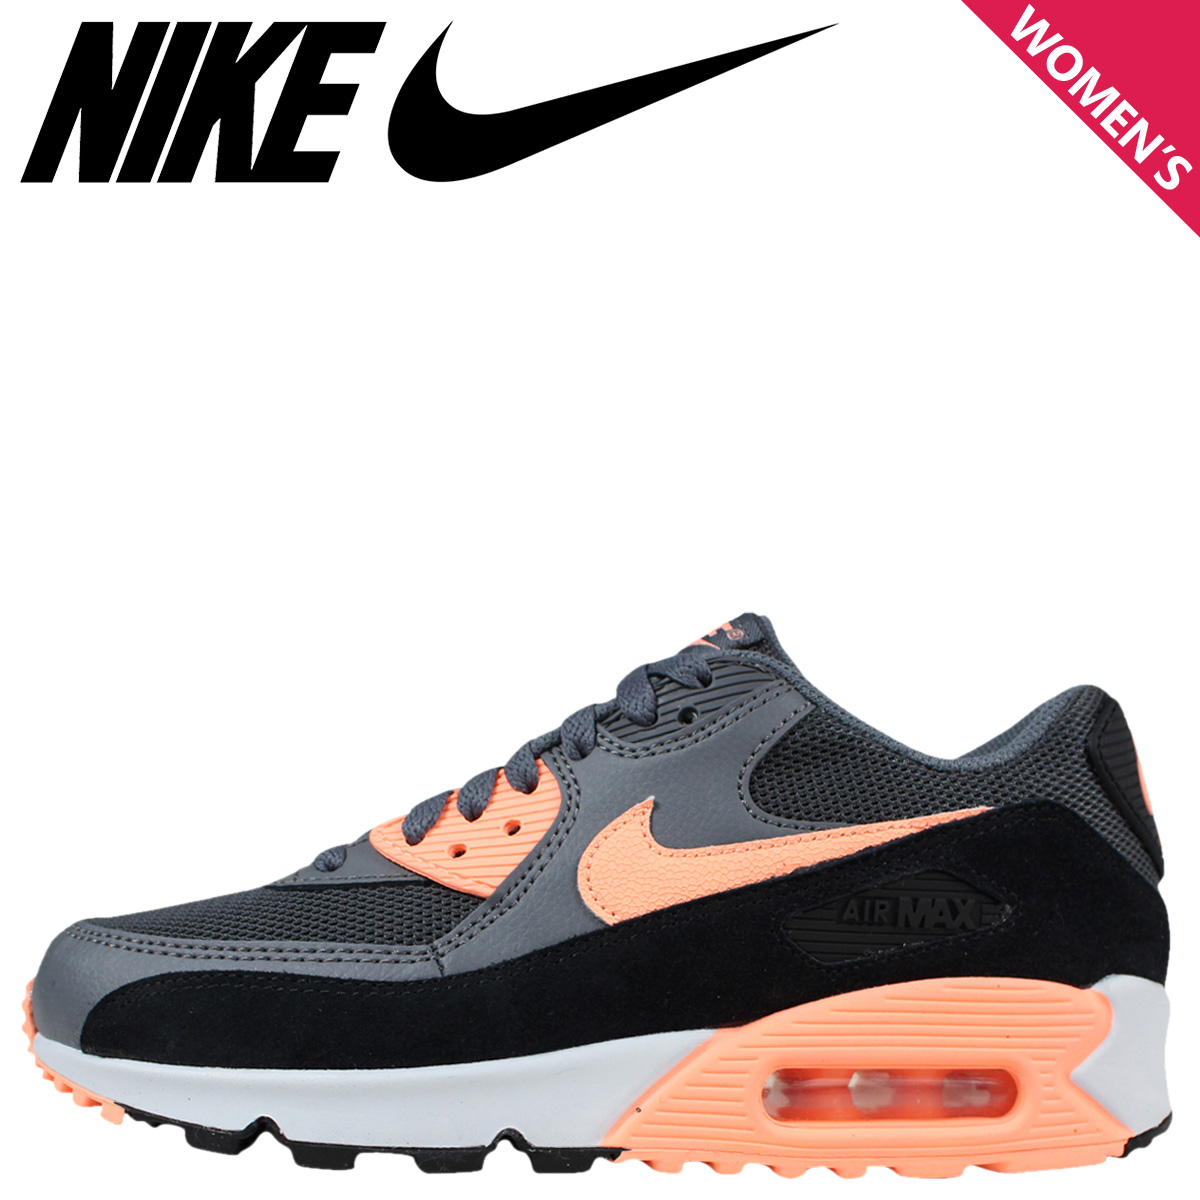 quality design 84a43 8e06a  SOLD OUT  Nike NIKE Air Max sneakers Womens WMNS AIR MAX 90 ESSENTIAL Air  Max 90 essential 616730 - 021 shoes black